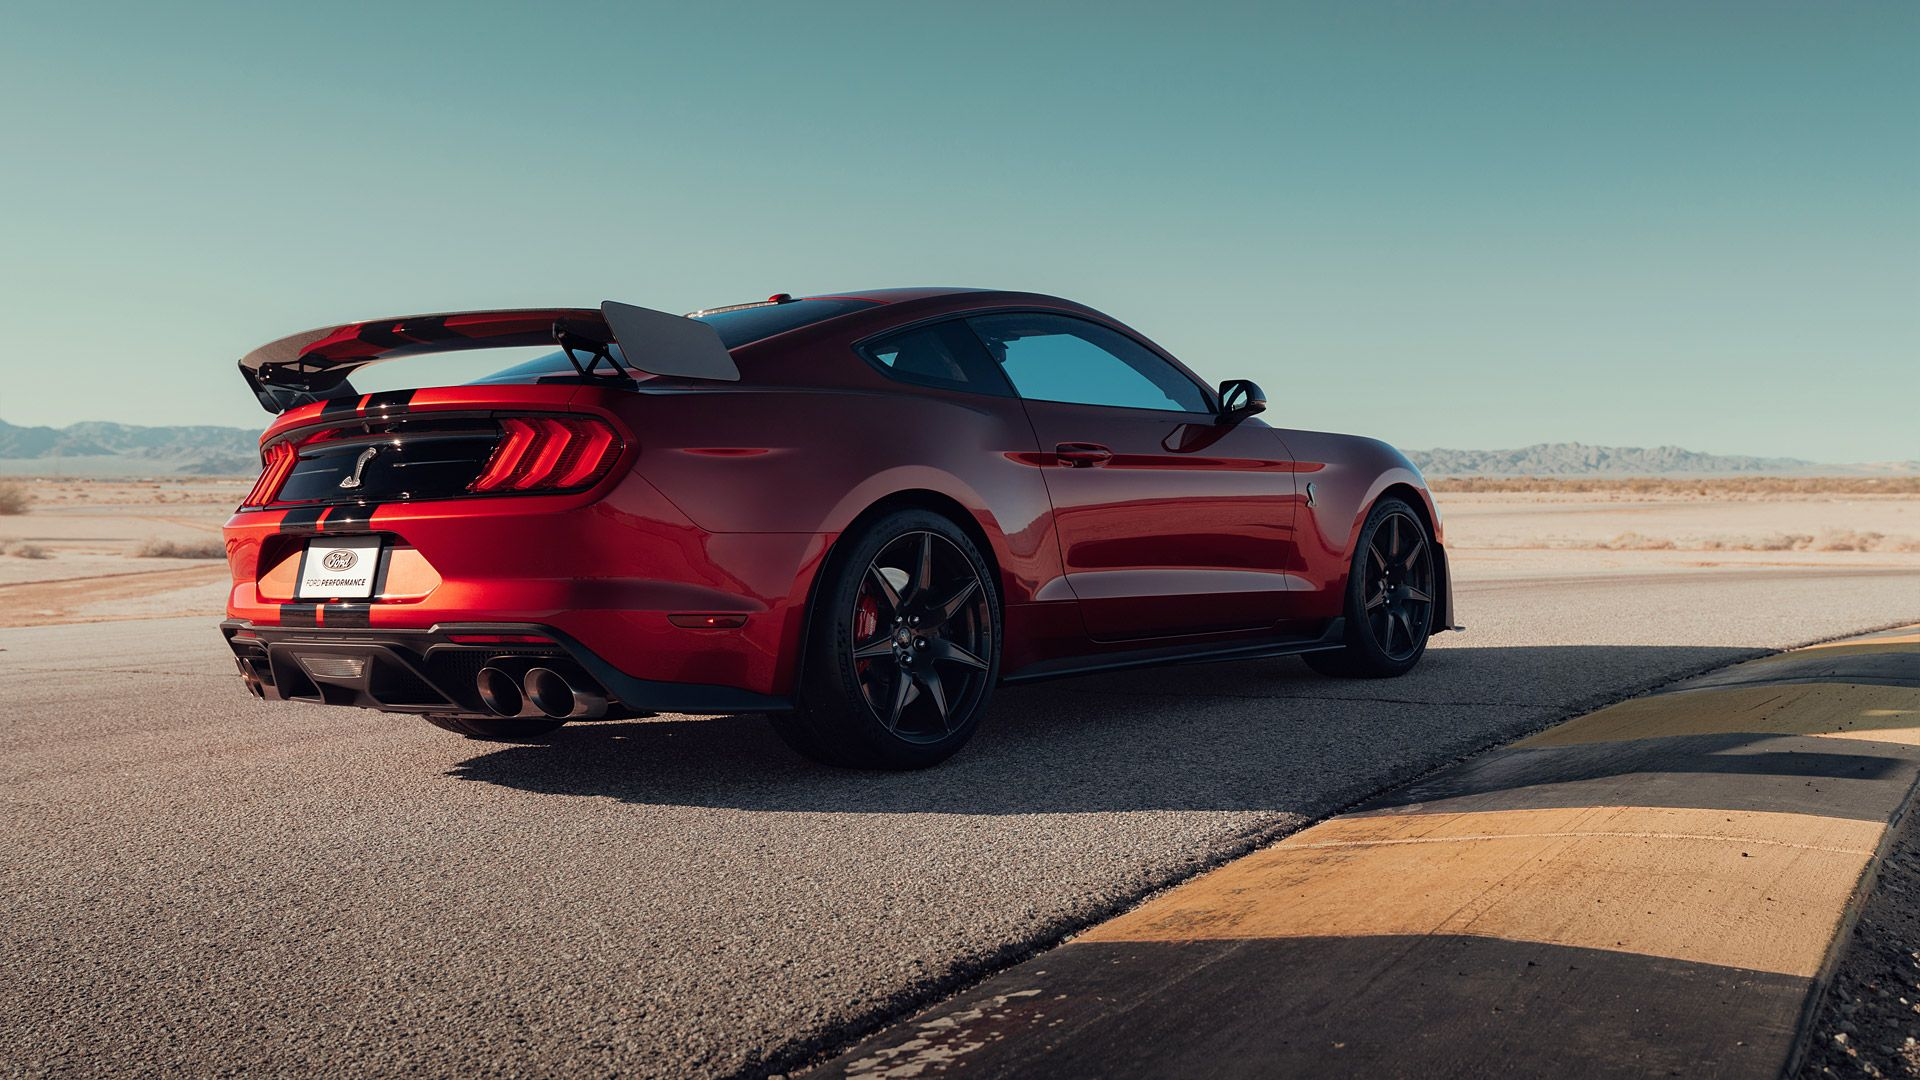 2020 Mustang Gt500 2020 Mustang Gt500 2020 Mustang Gt500 Black 2020 Mustang Gt500 Colors 2020 Mustan Mustang Shelby Ford Mustang Ford Mustang Shelby Gt500